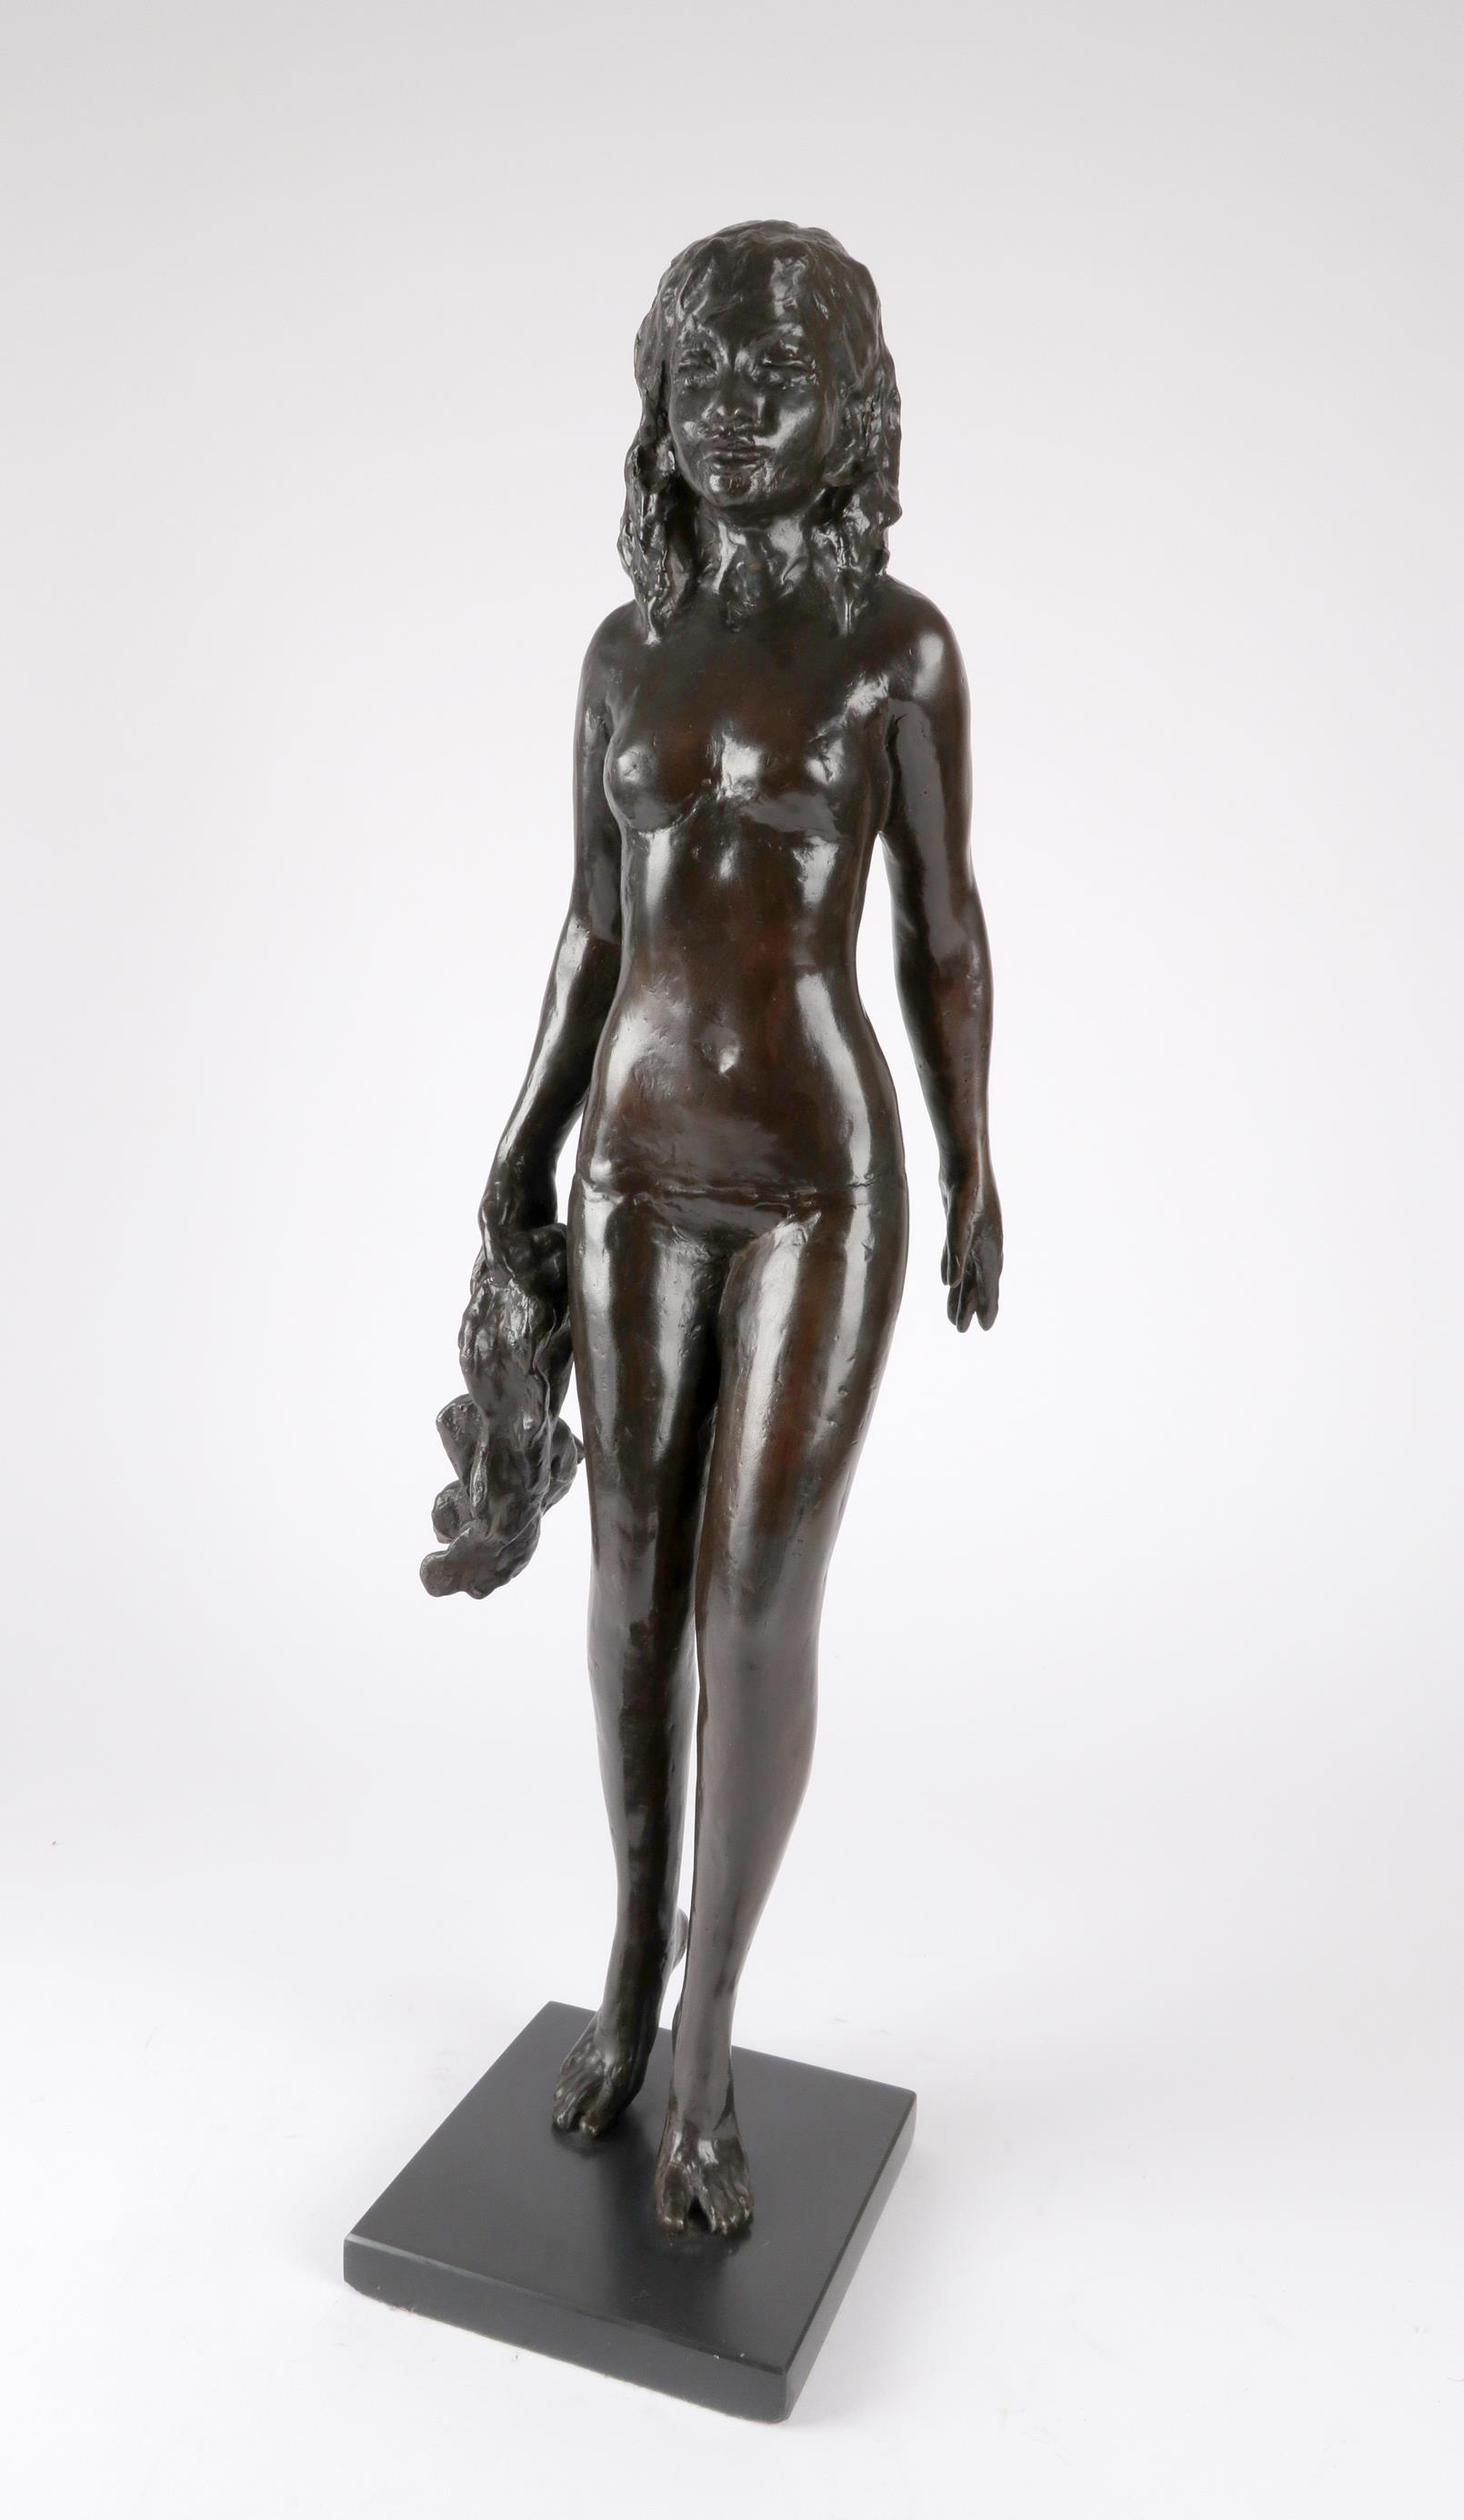 ‡Sydney Harpley RA, FRBS (1927-1992) Towel girl Signed and numbered Harpley/2/9 (to towel) Bronze on - Image 2 of 4